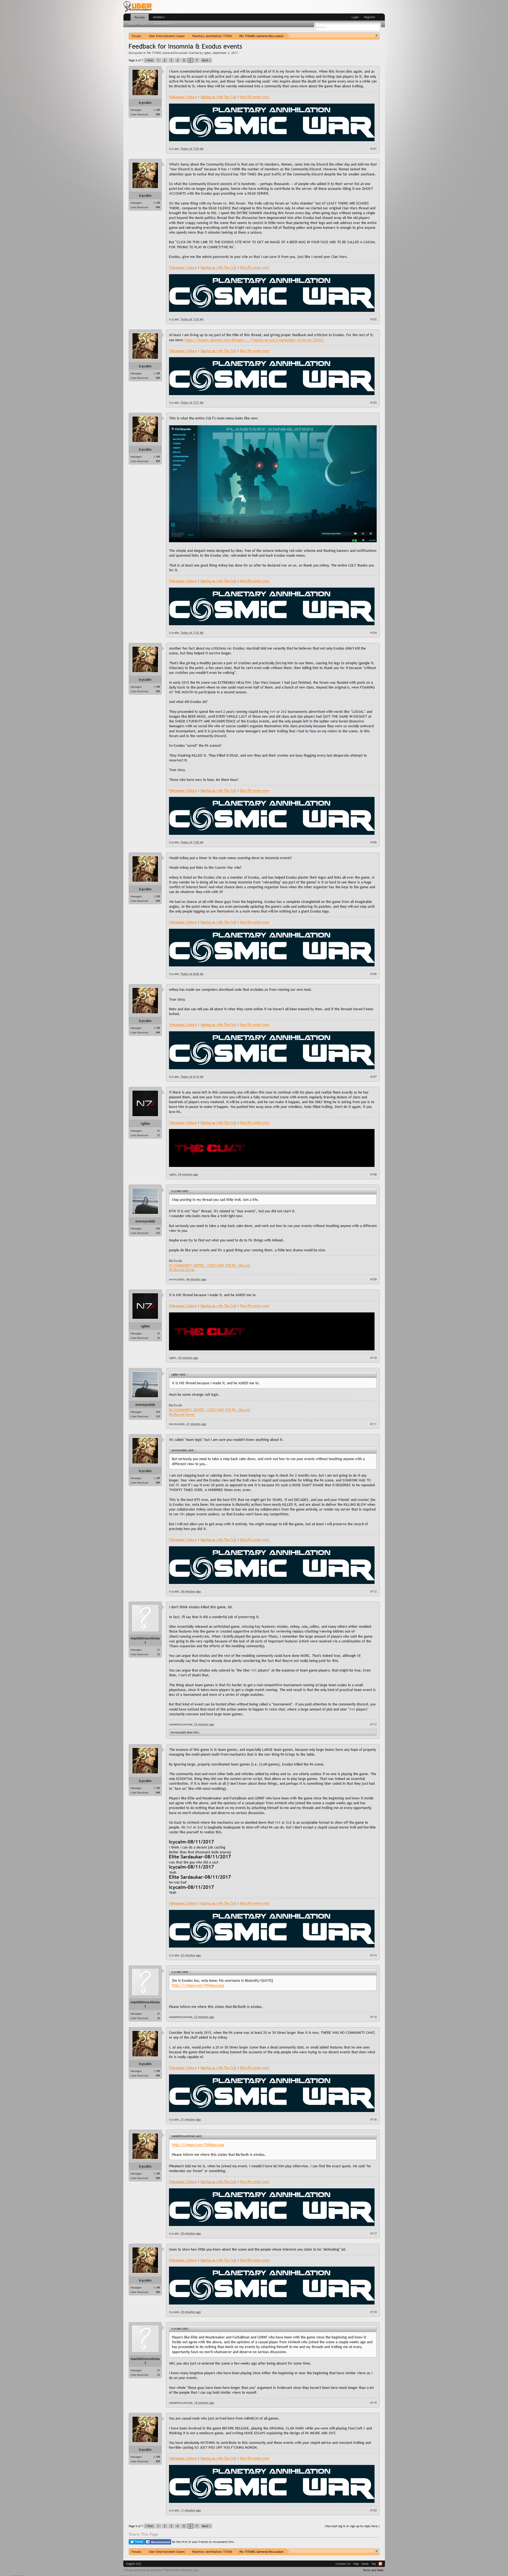 FireShot Screen Capture #087 - 'Feedback for Insomnia & Exodus events I Page 6 I Uber Entertainment' - forums_uberent_com_threads_feedback-for-insomni.png